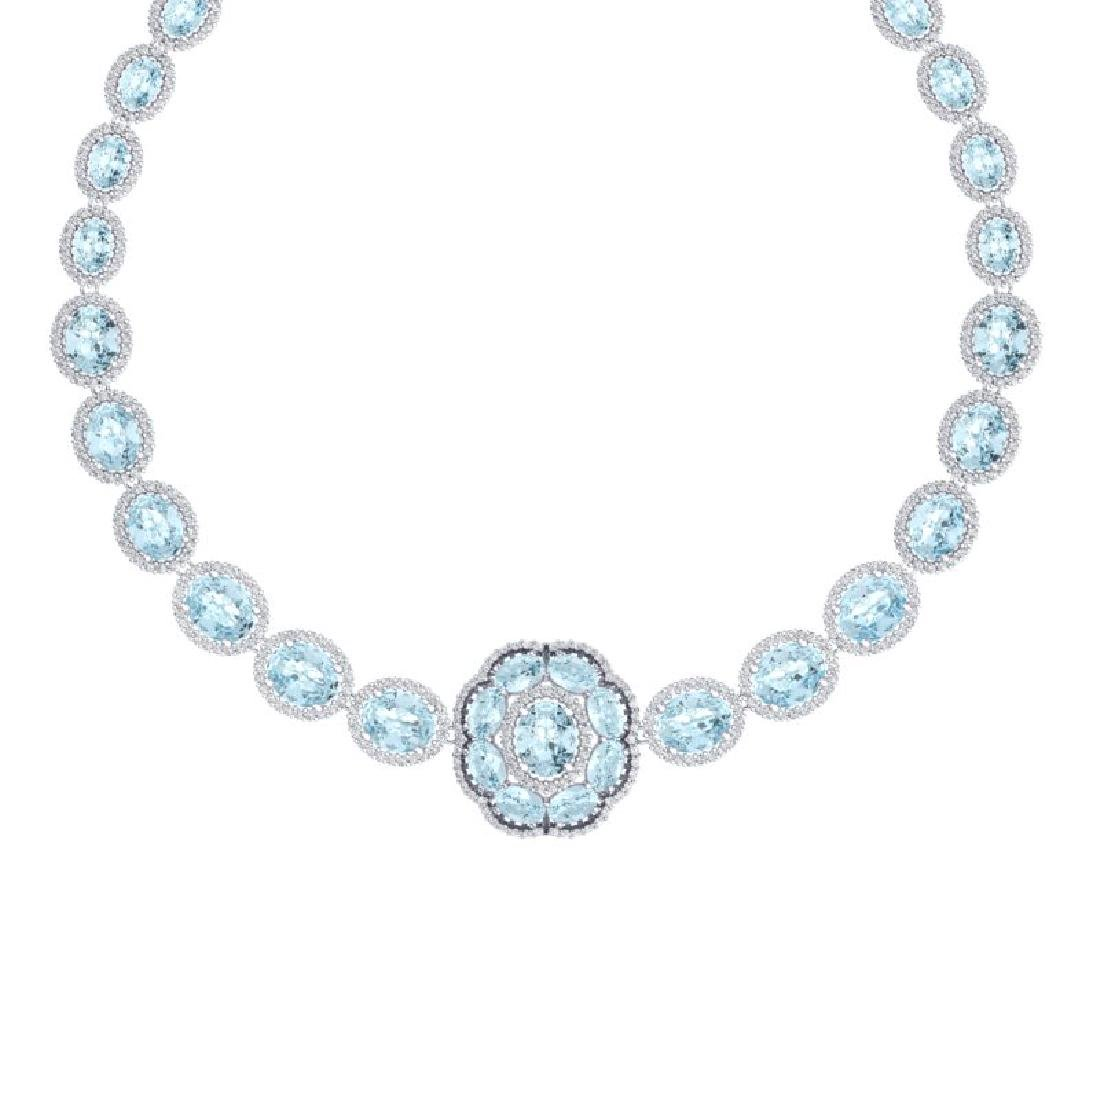 52.67 CTW Royalty Sky Topaz & VS Diamond Necklace 18K - 2